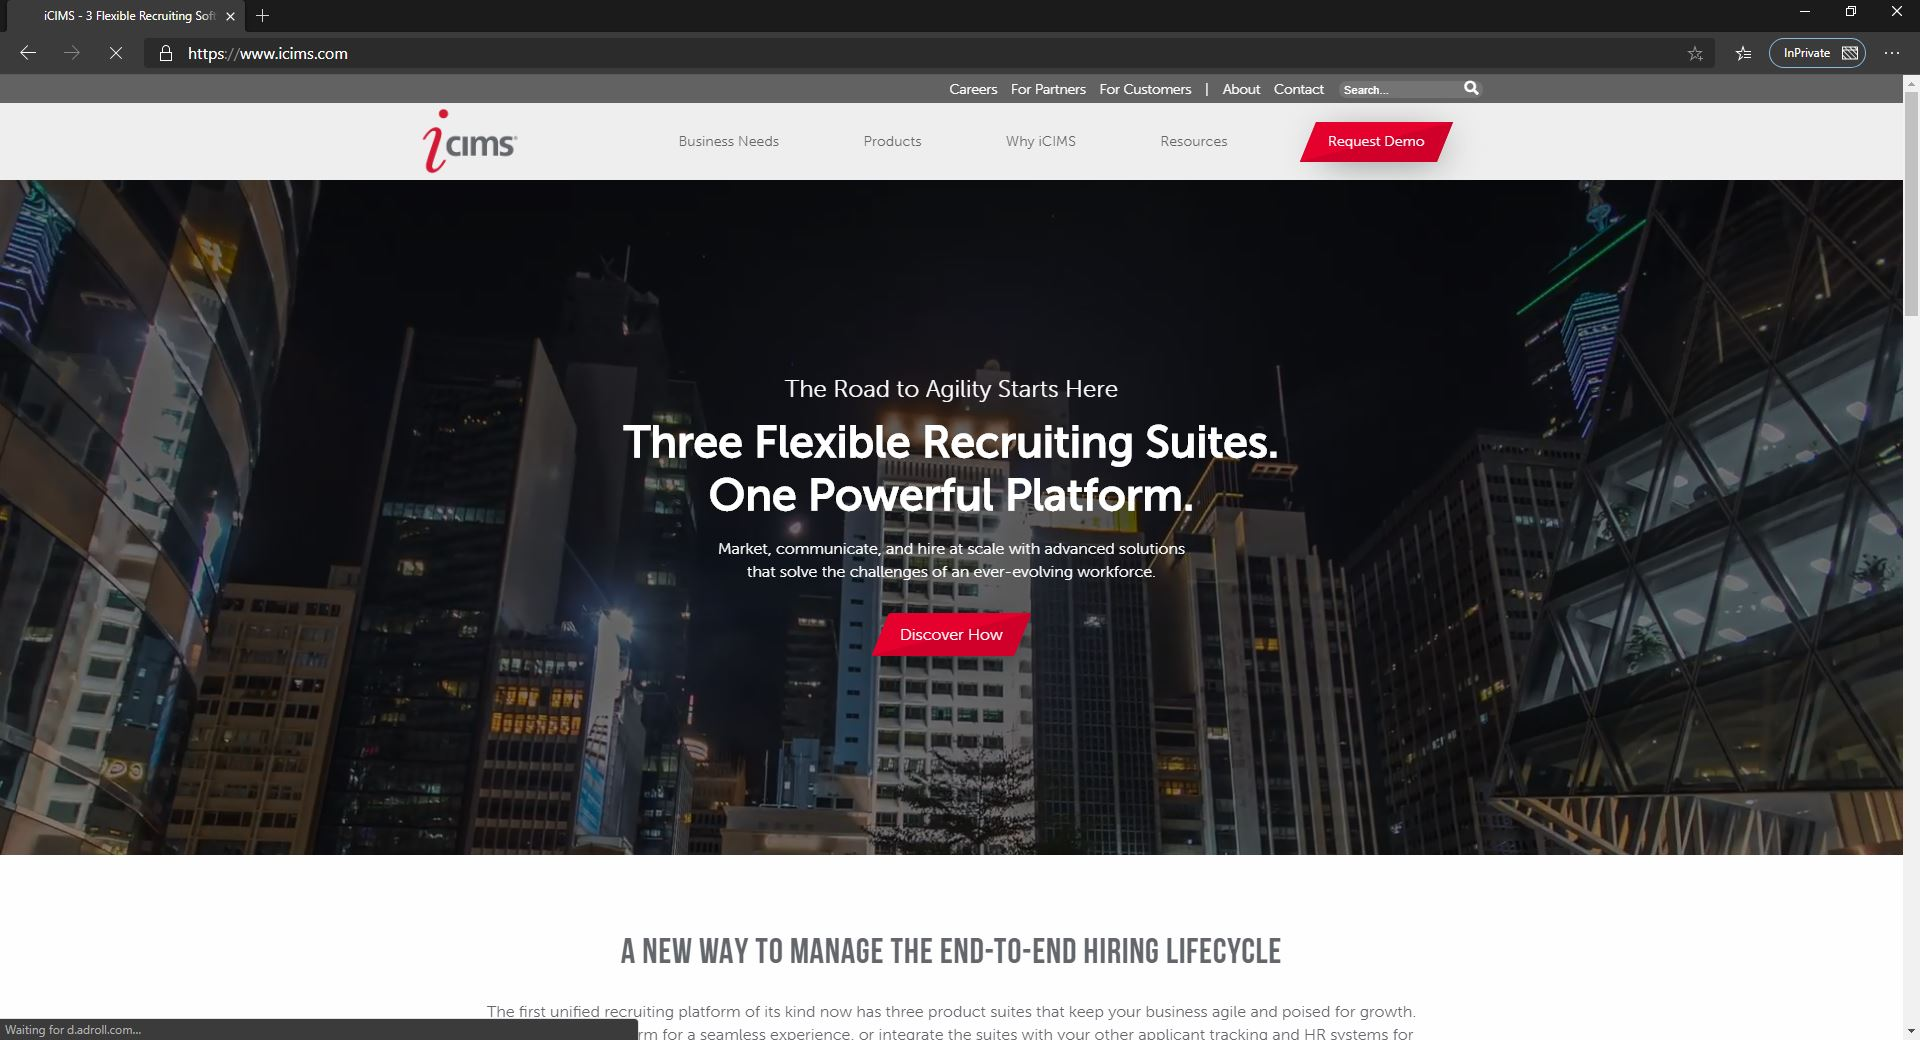 10 Best Recruiting Software For Small Businesses & Startups Companies-ICIMS-Fig 1